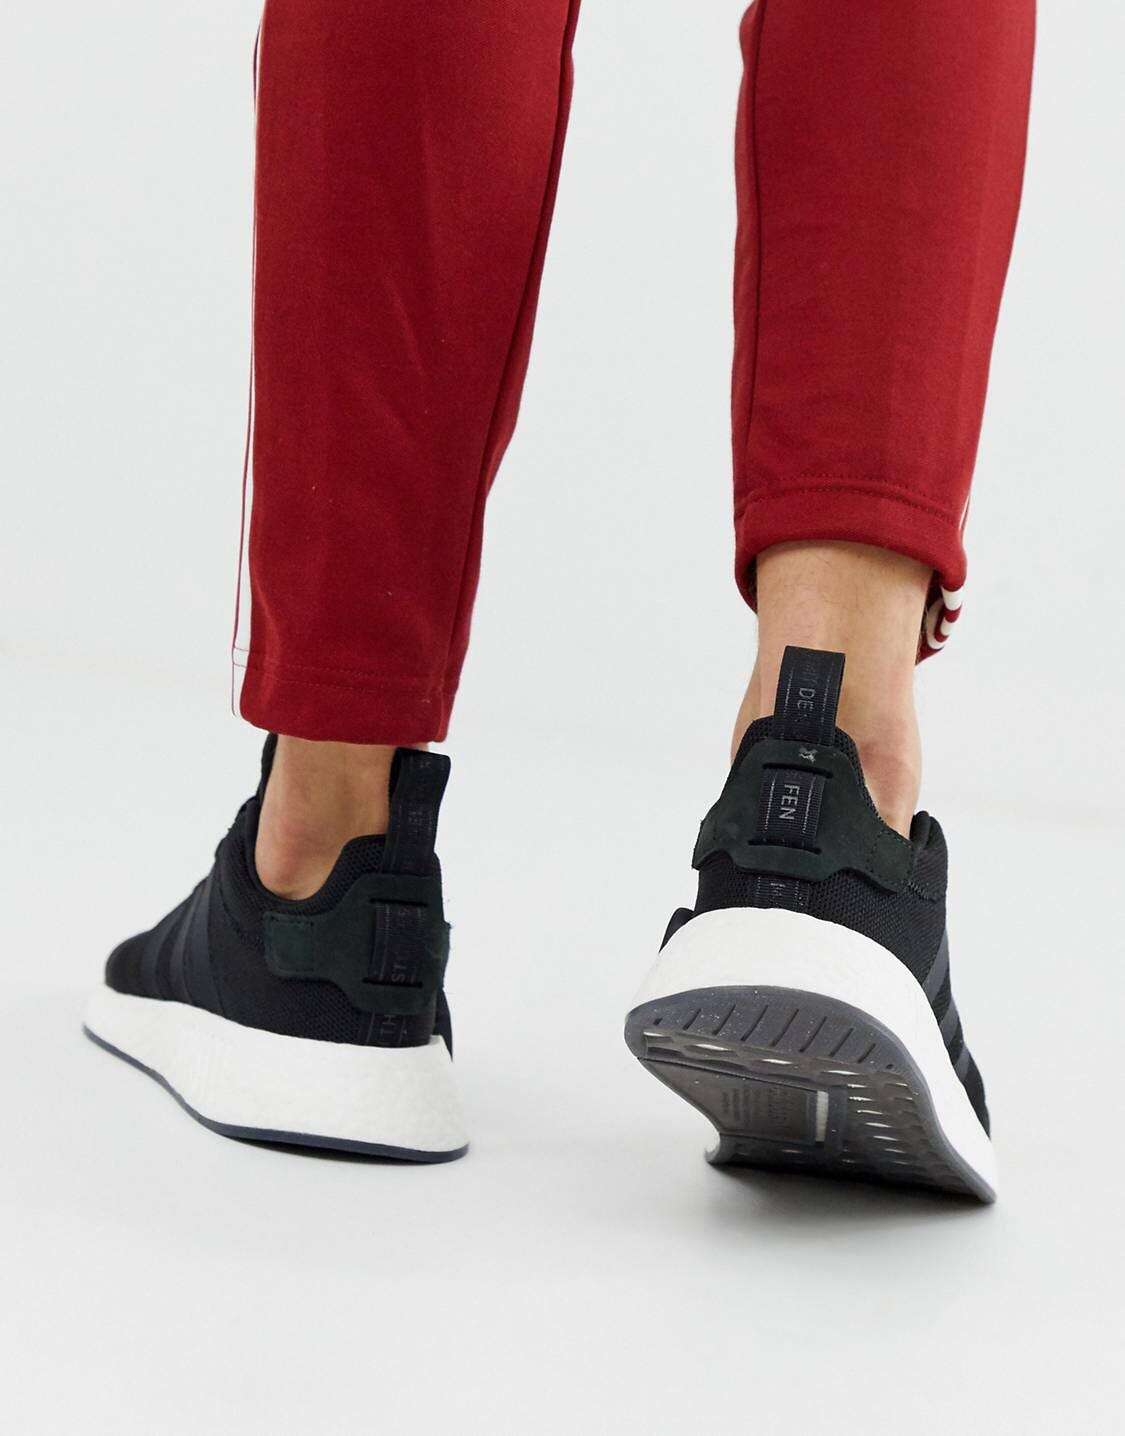 finest selection ad07e eb222 STEAL) Adidas NMD R2 Black , Men's Fashion, Footwear ...